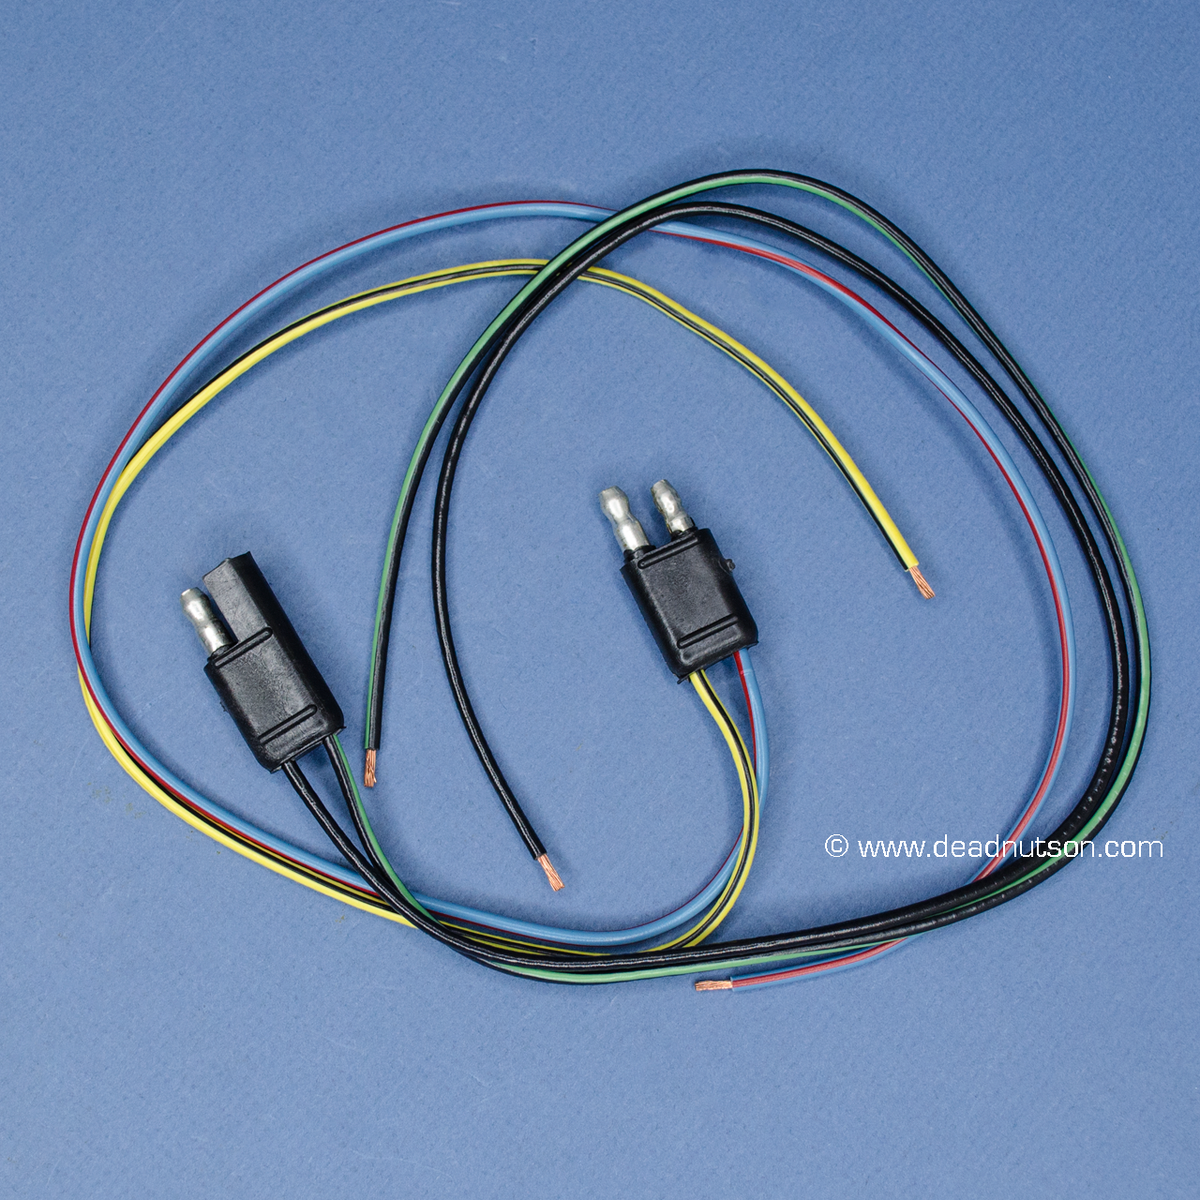 1967-70 Mustang AM Radio Wiring Repair Harness Set ...